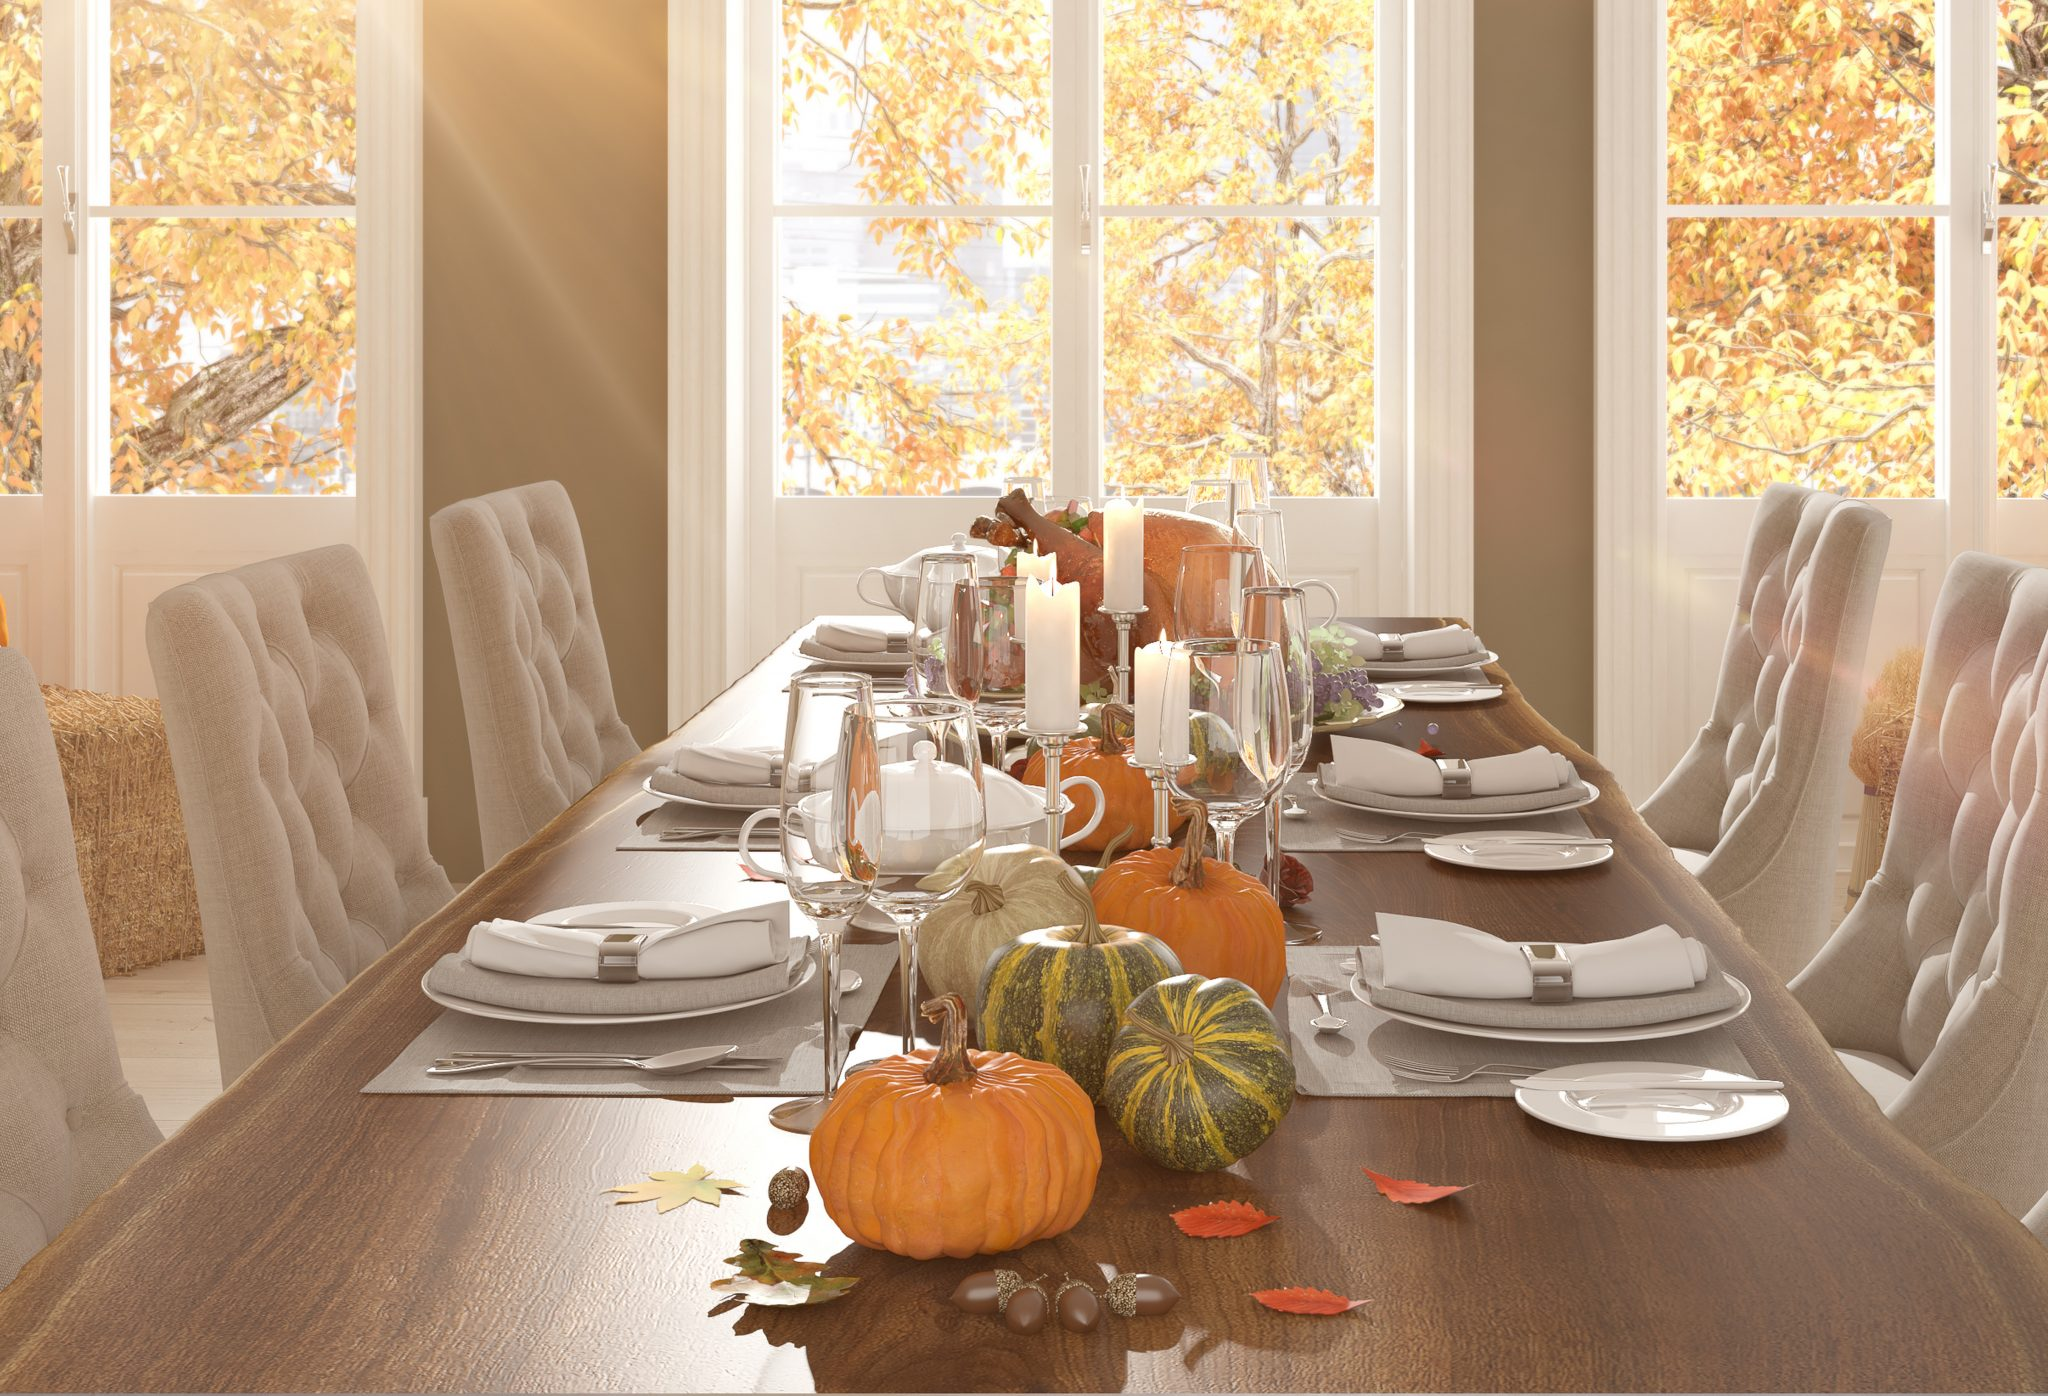 How To Set Your Thanksgiving Table Forks Napkins Decor Oh My